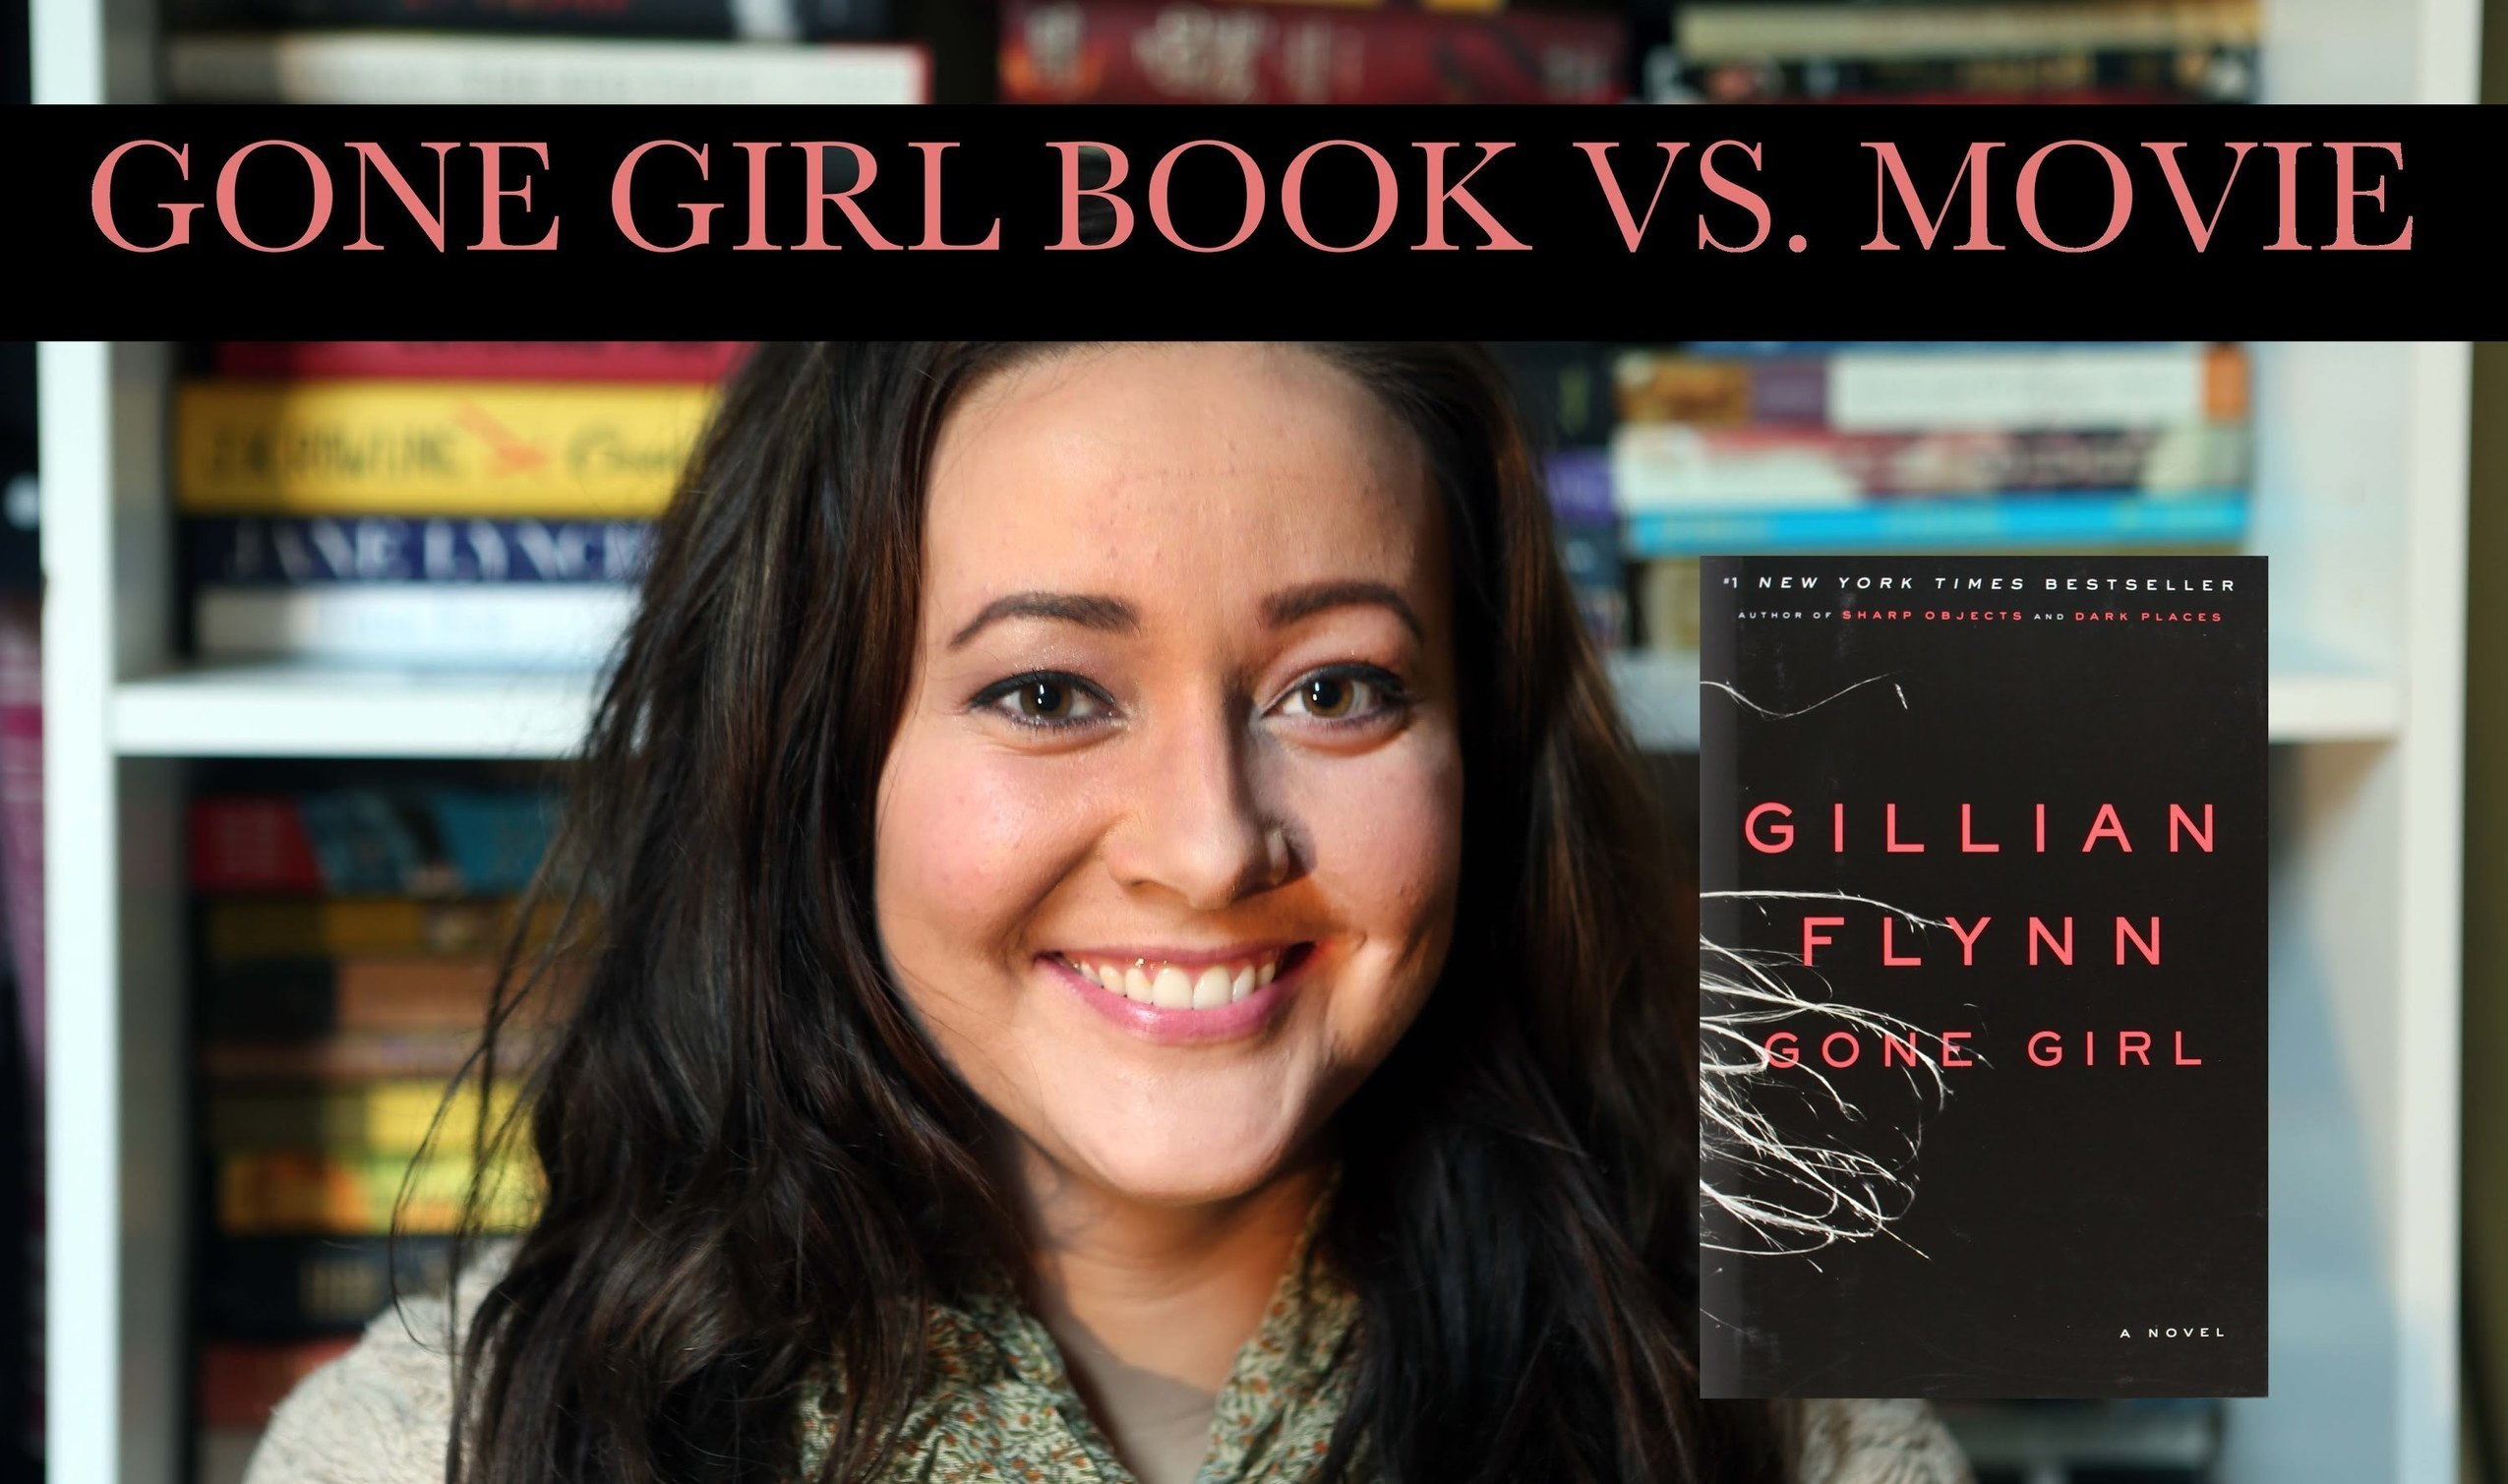 a movie vs book comparison of